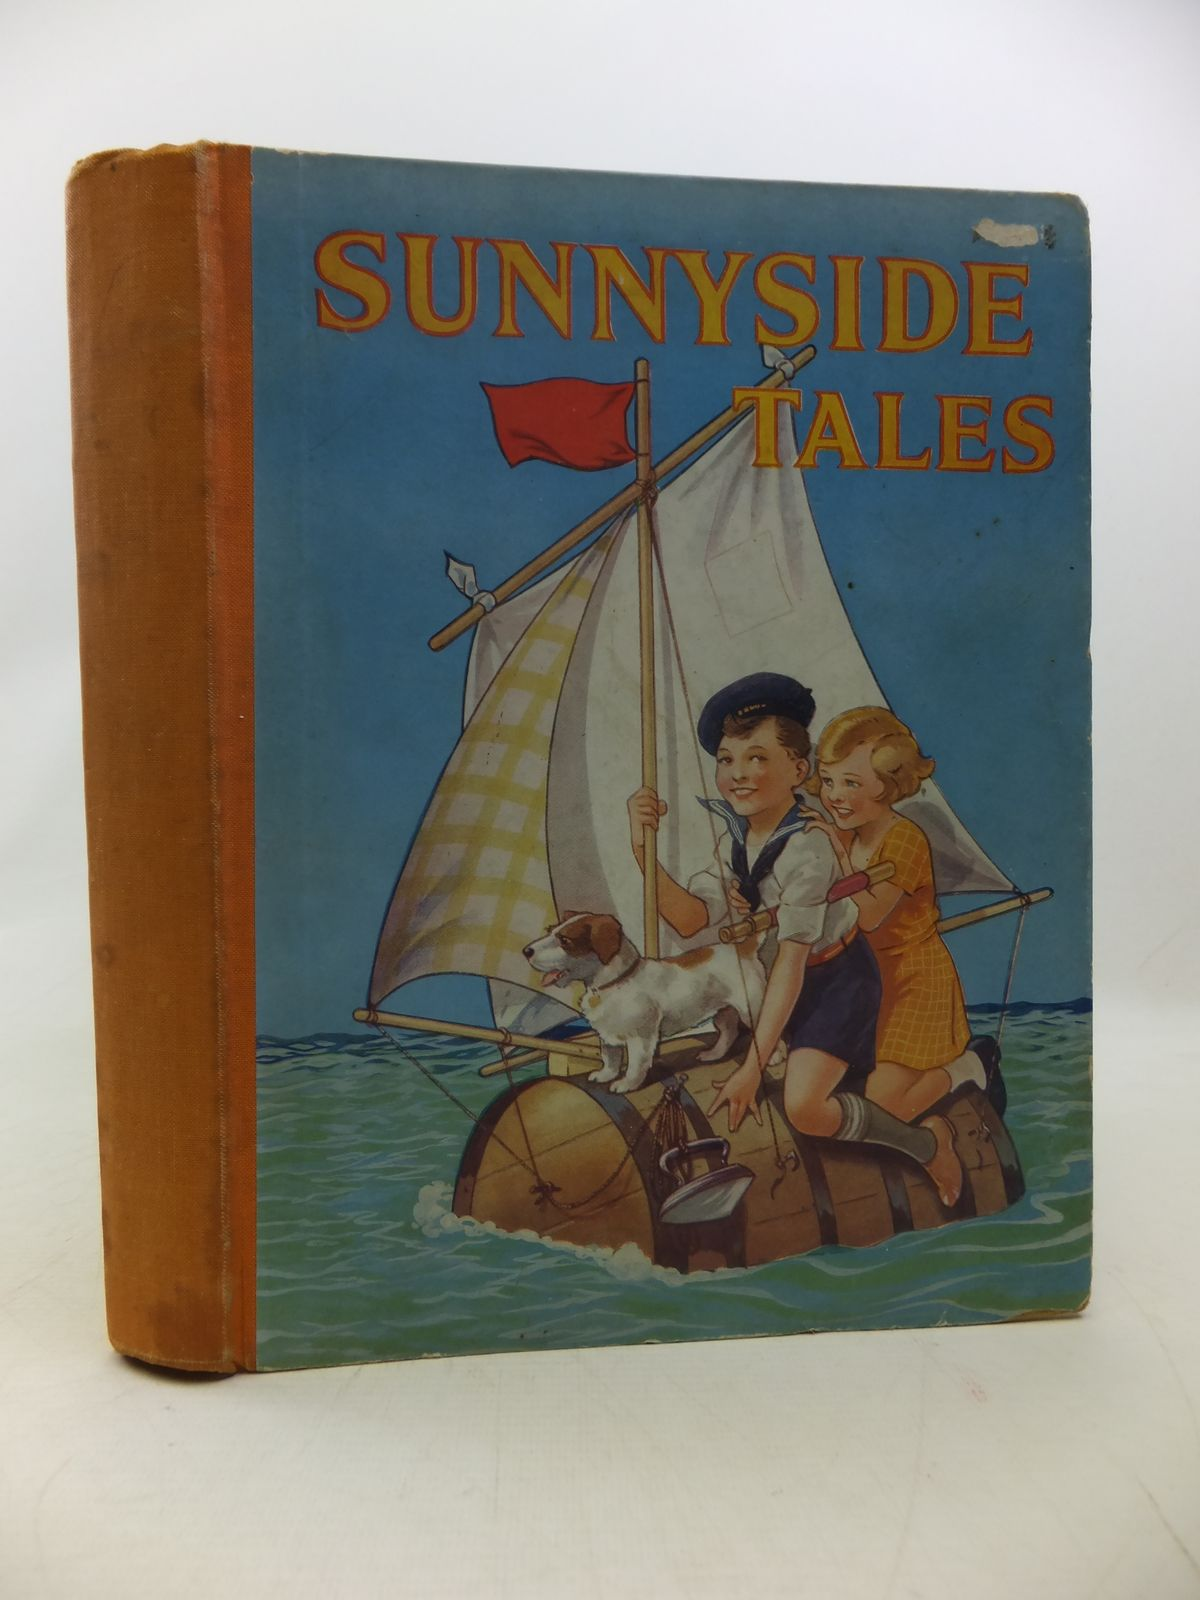 Photo of SUNNYSIDE TALES published by Juvenile Productions Ltd. (STOCK CODE: 1808926)  for sale by Stella & Rose's Books